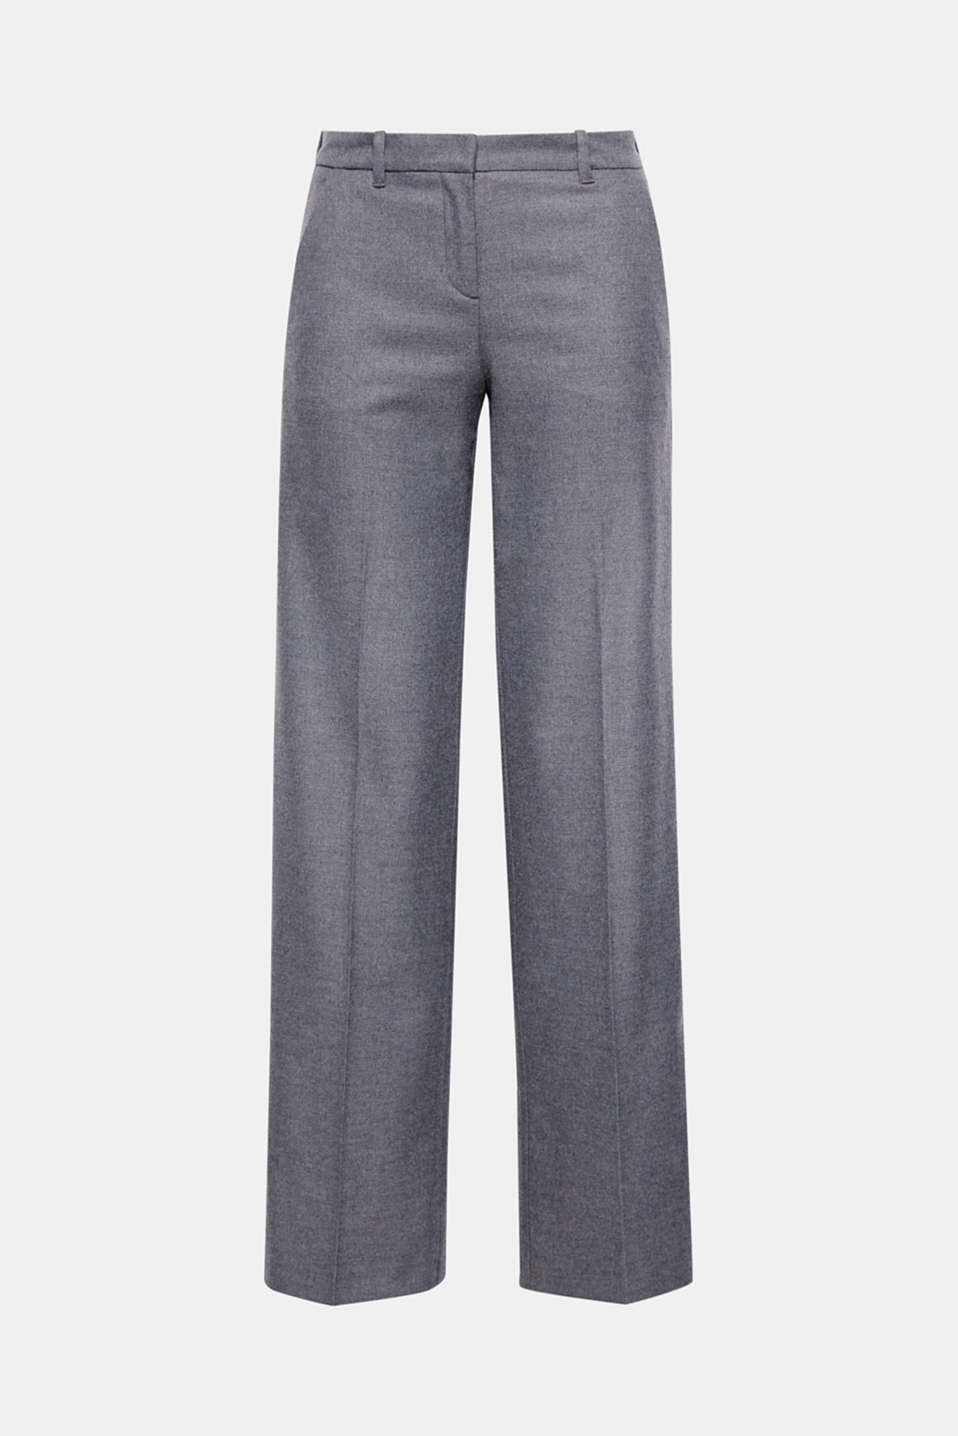 These smart trousers with a woolly finish and loose hem width are perfect for the office or for going out on the evening.